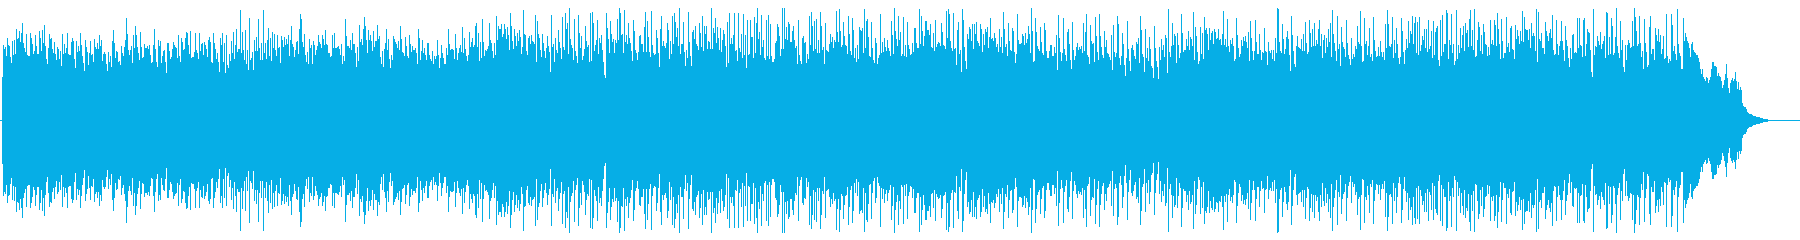 Melody that you can relax in style's reproduced waveform